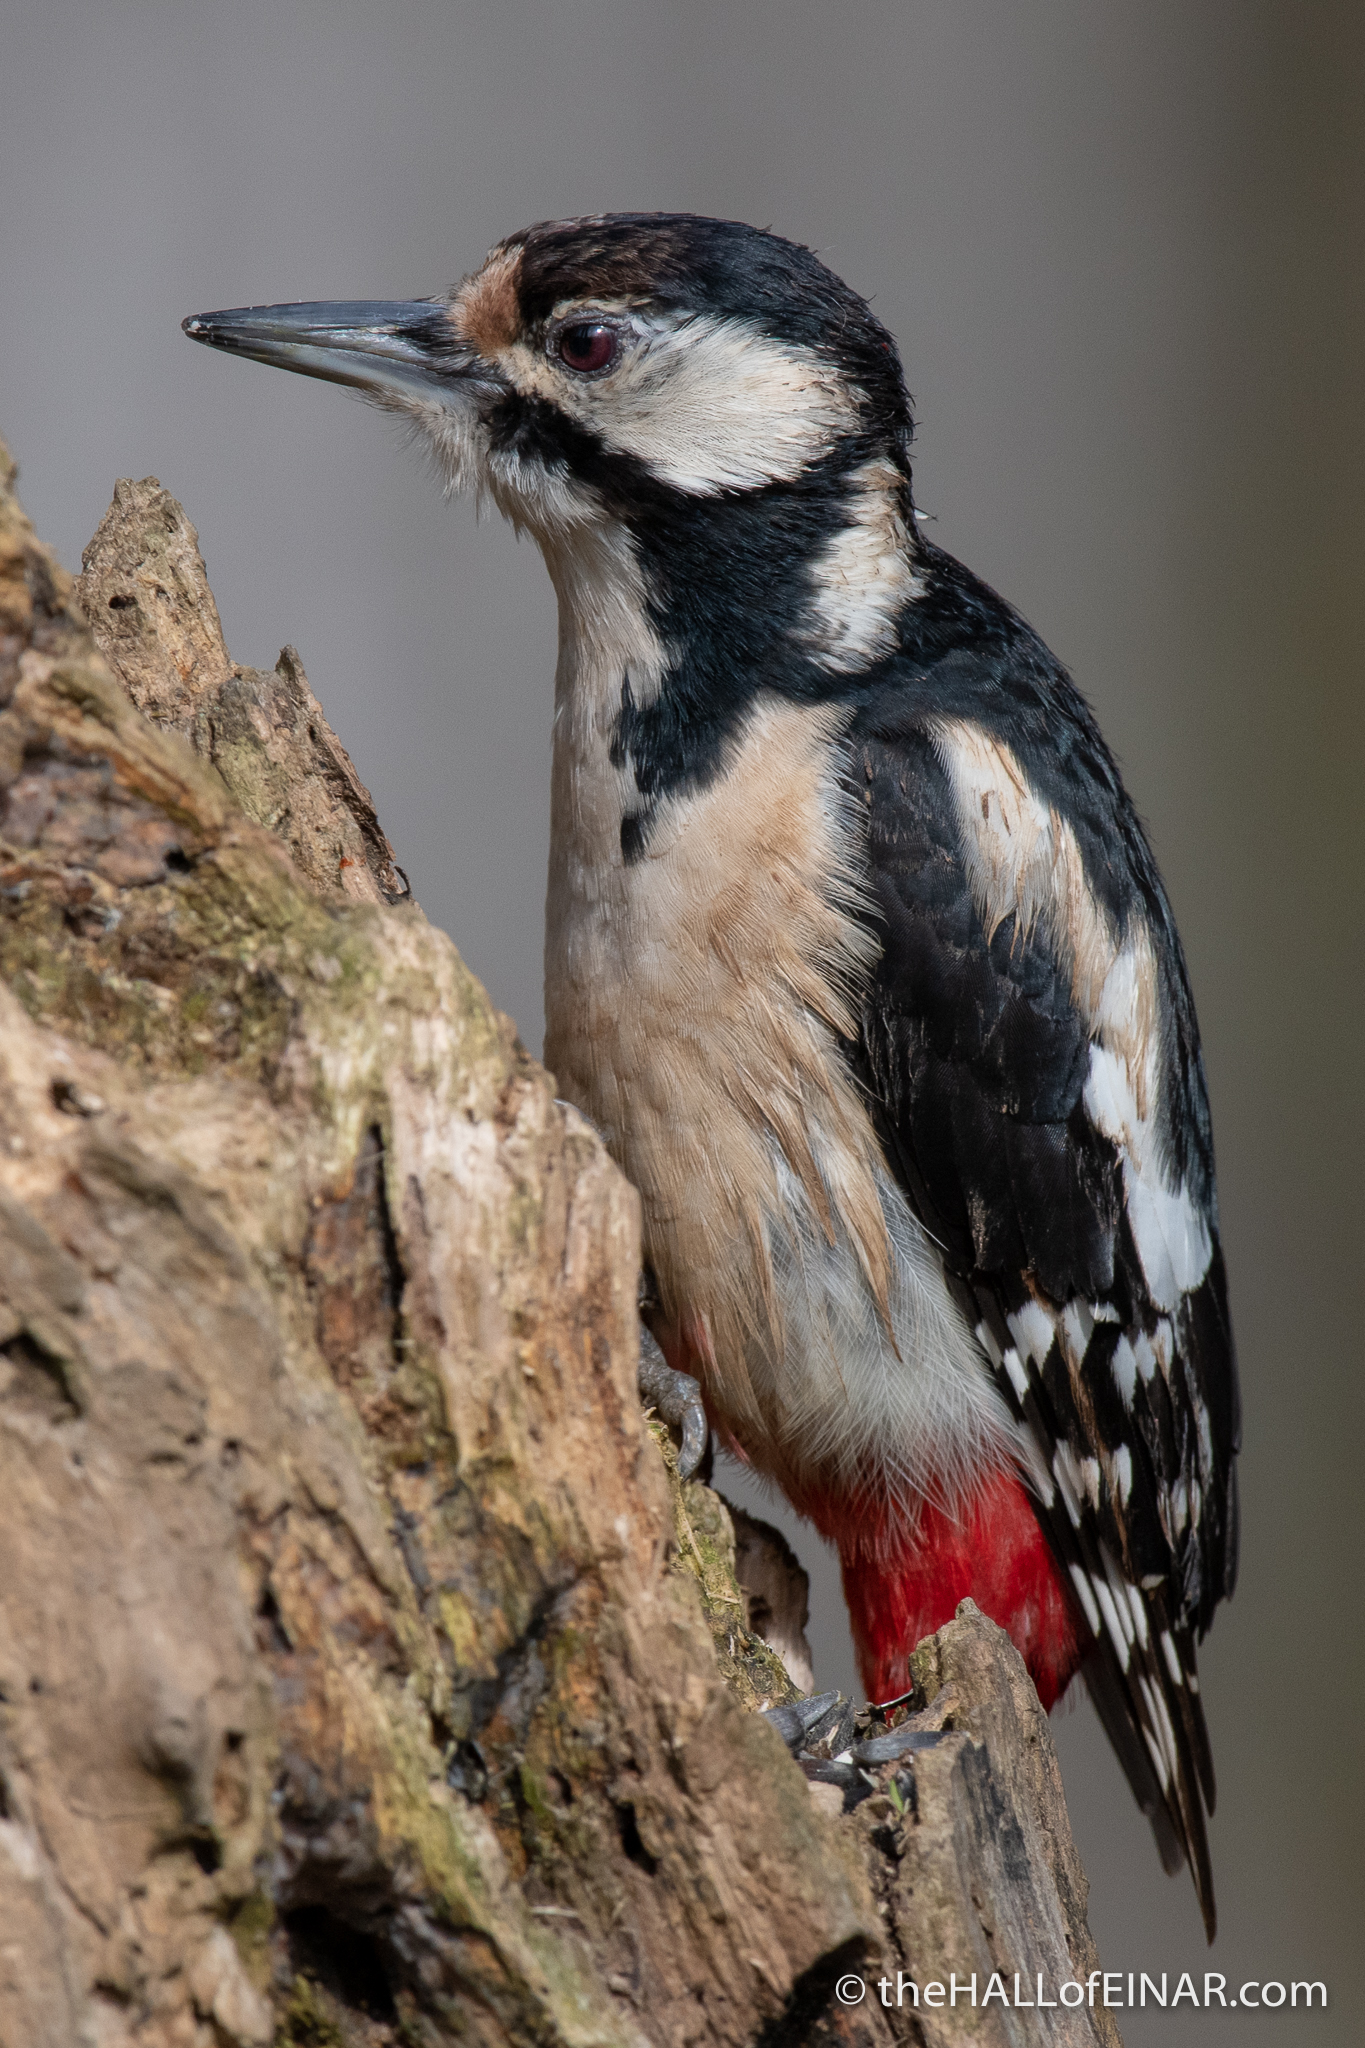 Great Spotted Woodpecker - Alviano - The Hall of Einar - photograph (c) David Bailey (not the)